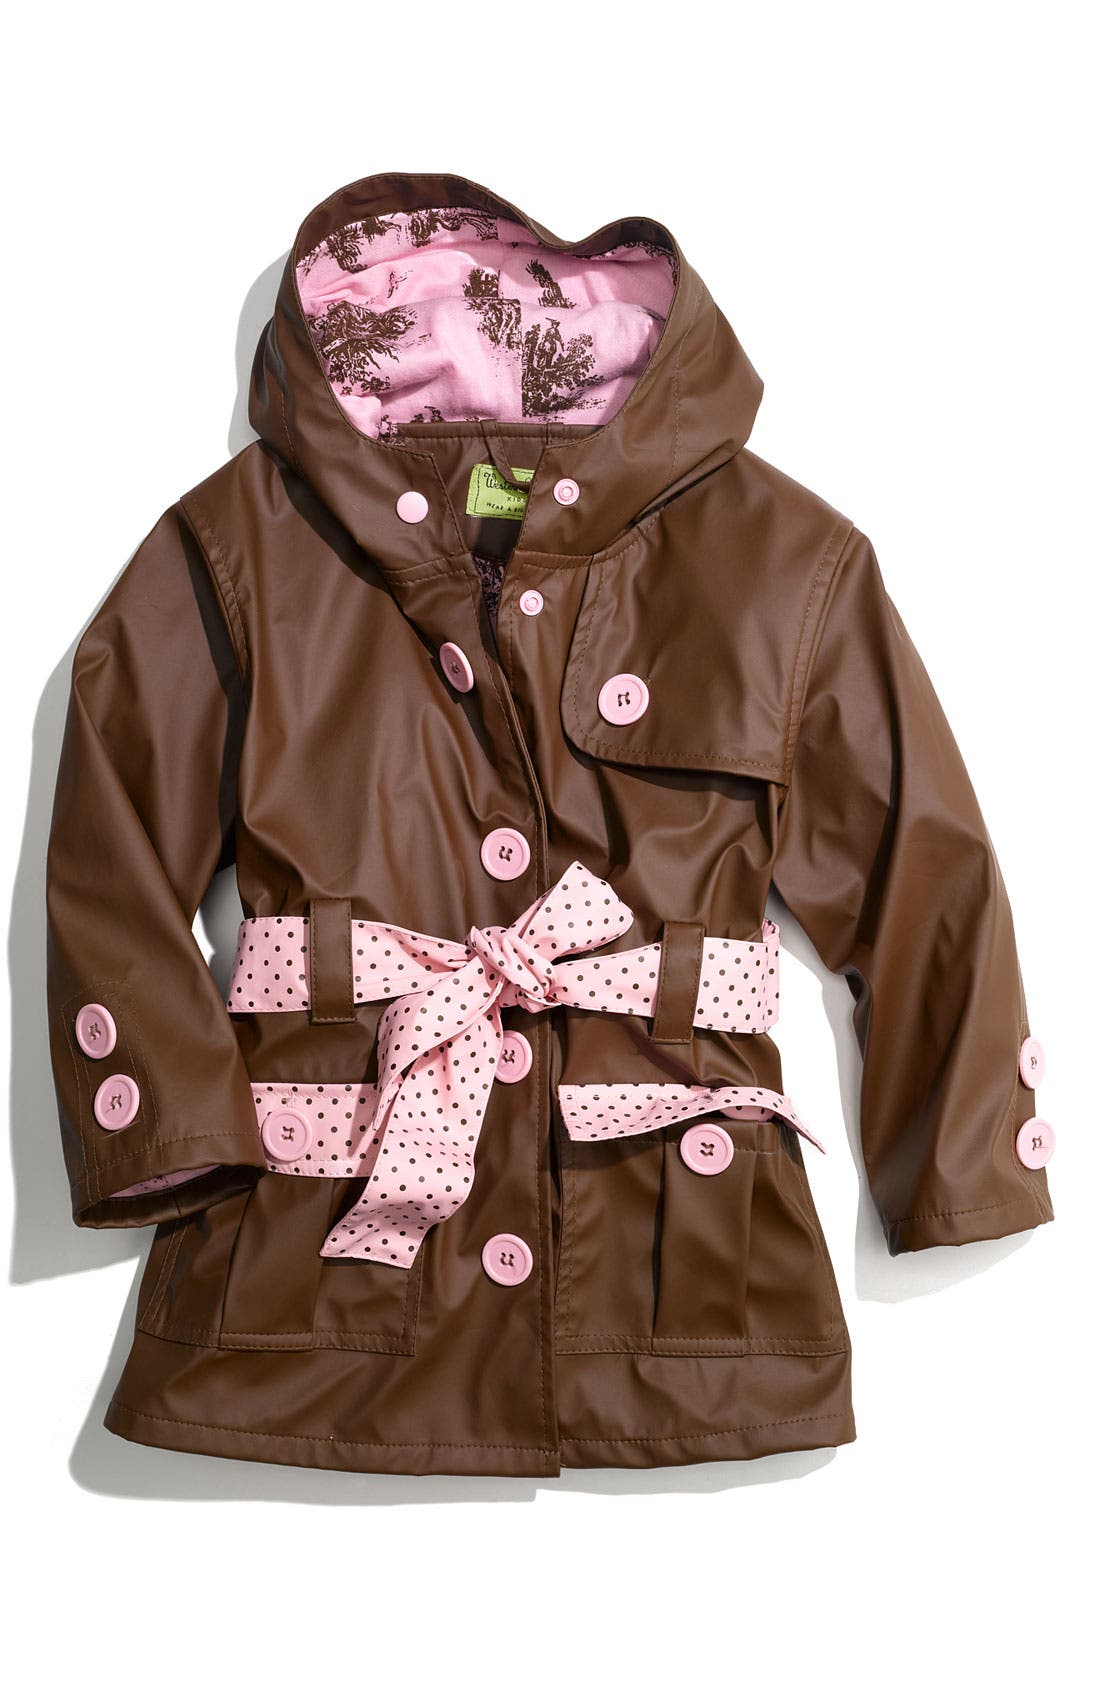 Alternate Image 1 Selected - Western Chief 'Frenchy French' Raincoat (Toddler Girls & Little Girls)